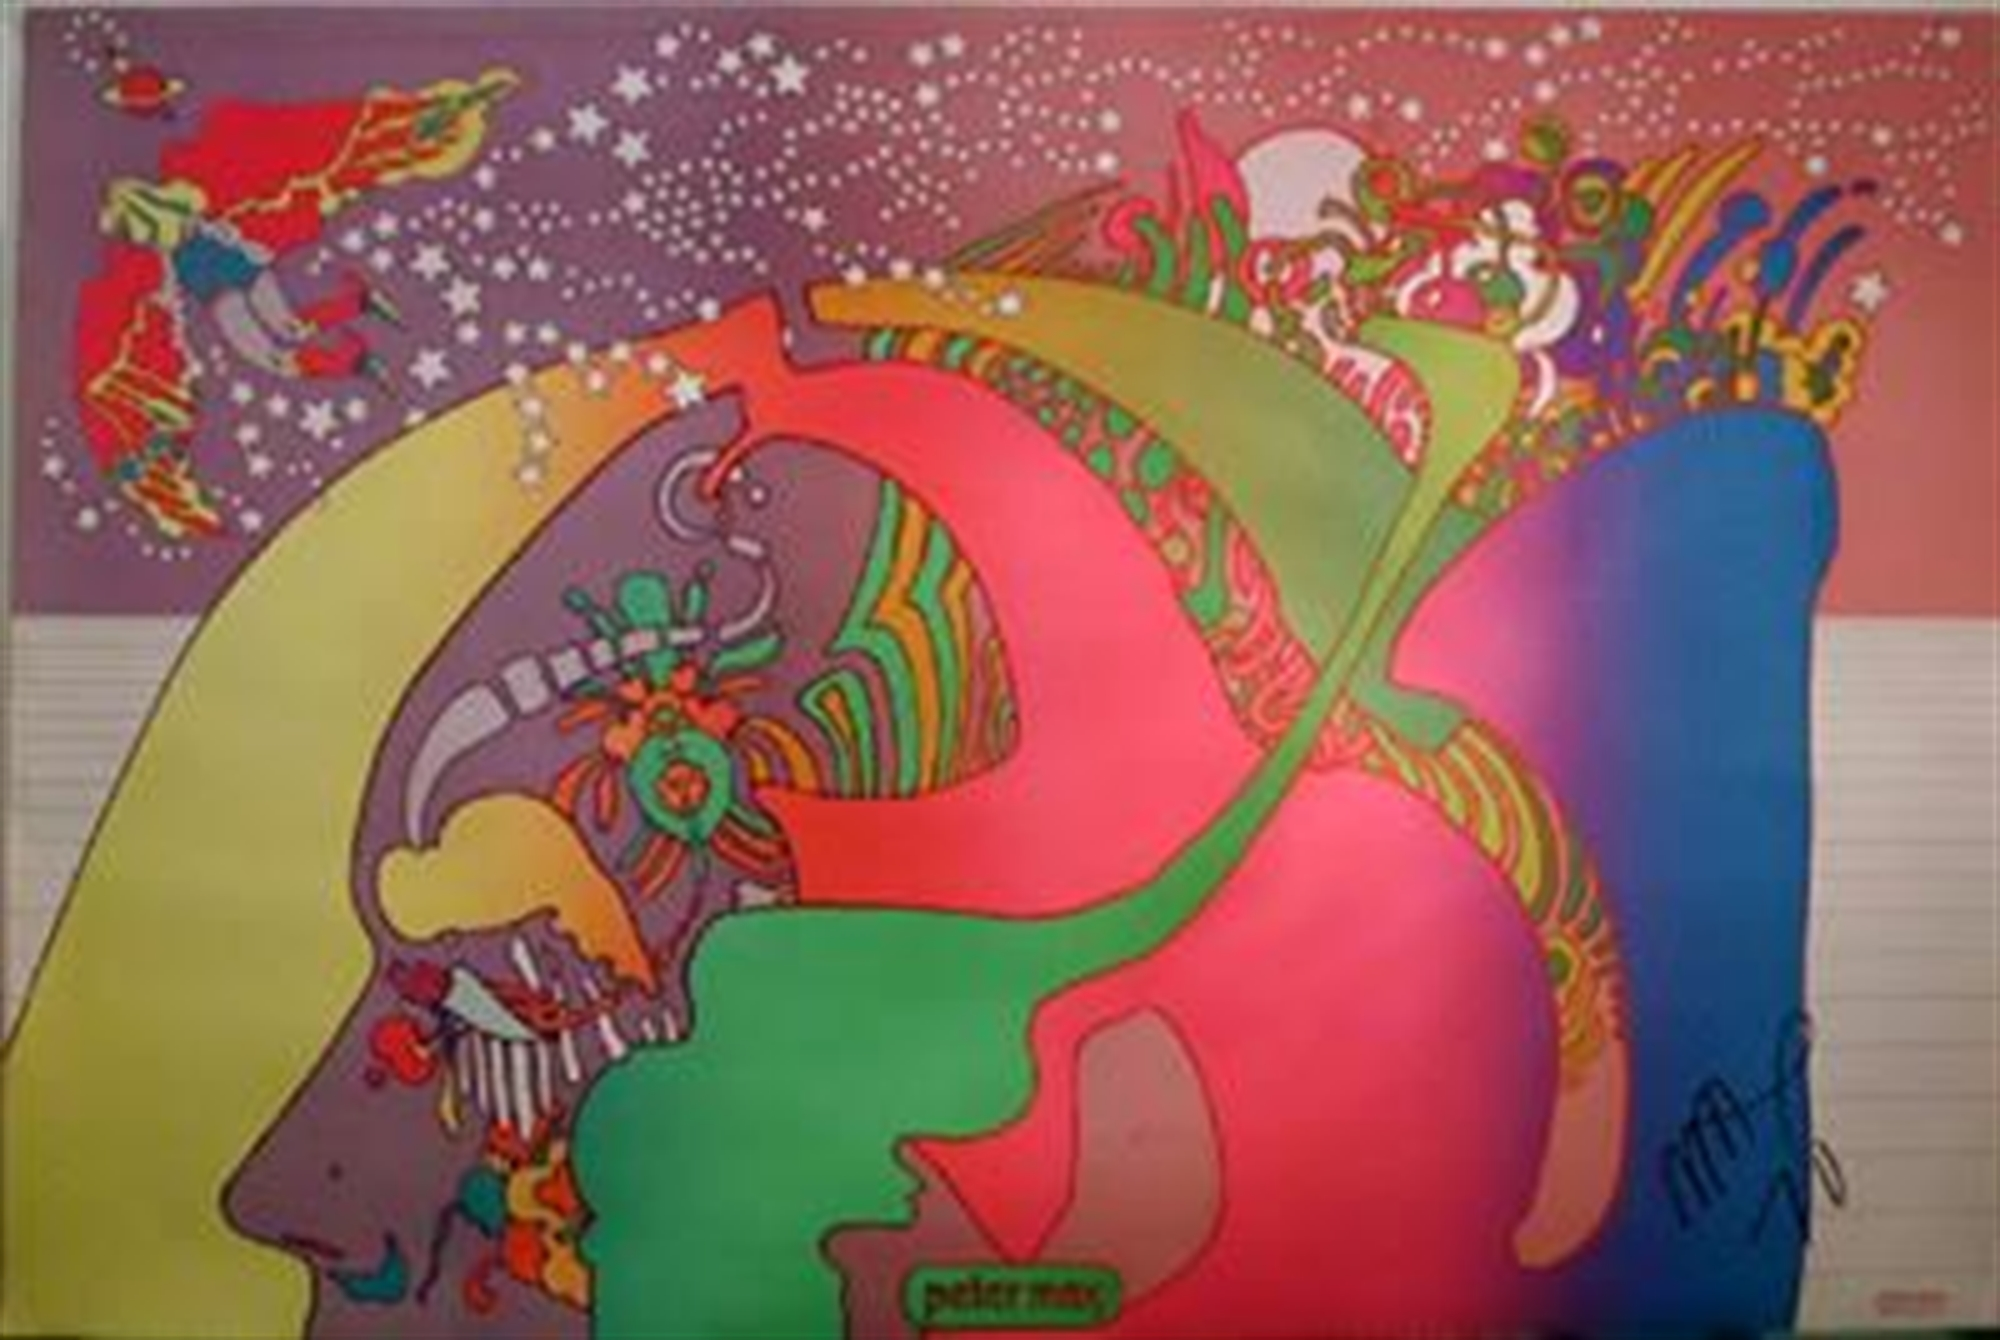 Instant Nutriment by Peter Max